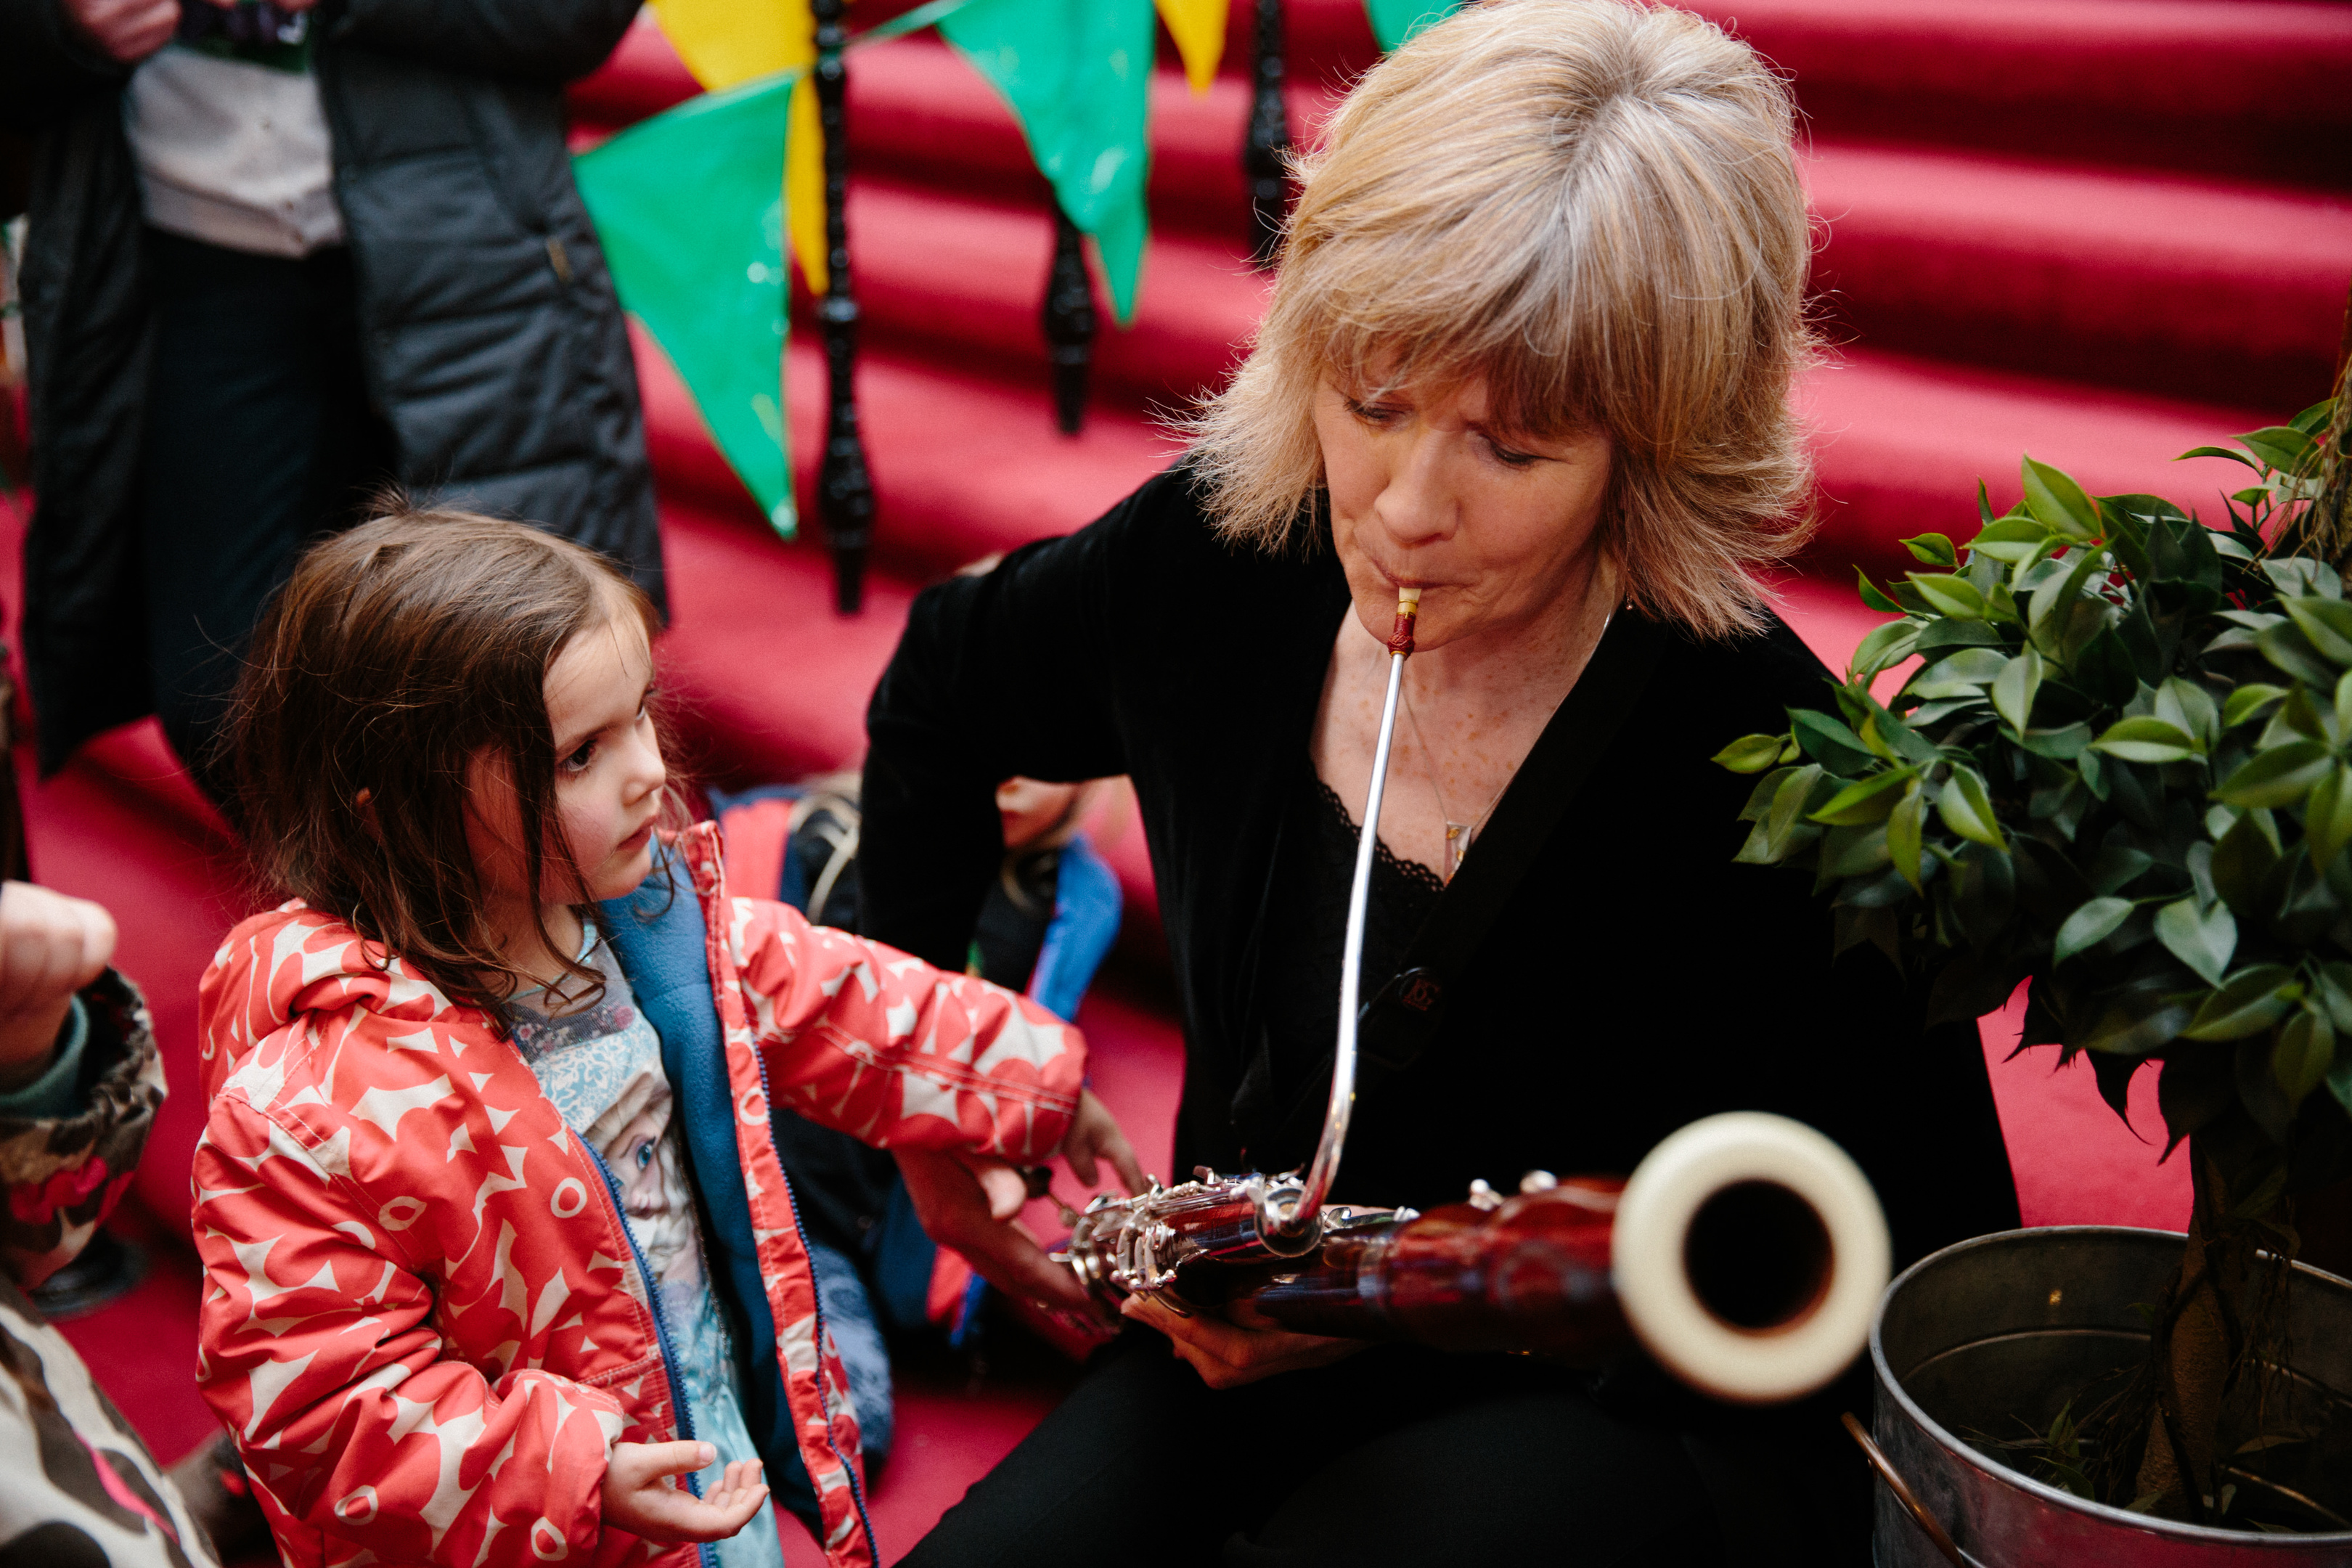 Scottish Chamber Orchestra bassoon player Alison Green shares instrument with youngster at fun day